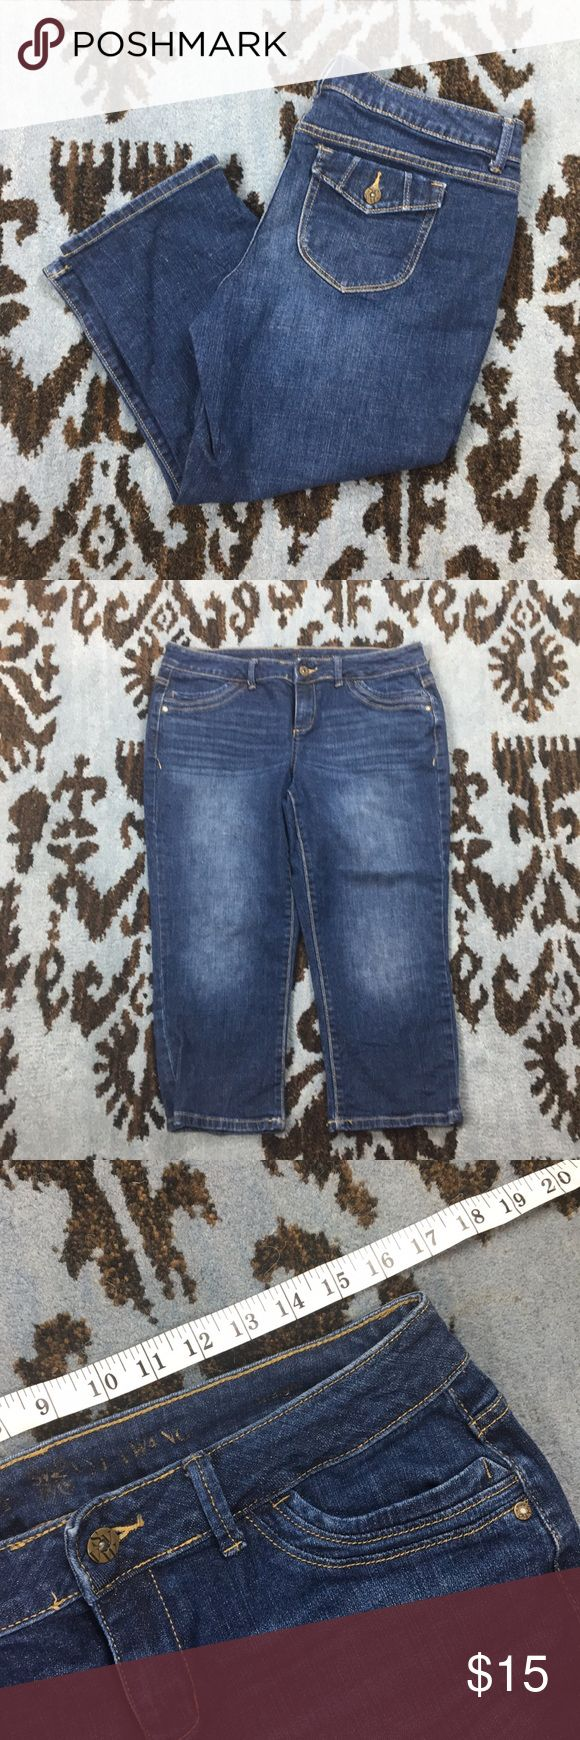 Simply Vera Wang Straight Jean Capri 14P Simply Vera Wang Straight Jean Capri 14P, measurements in photos. Excellent condition. 1% Spandex. Simply Vera Vera Wang Jeans